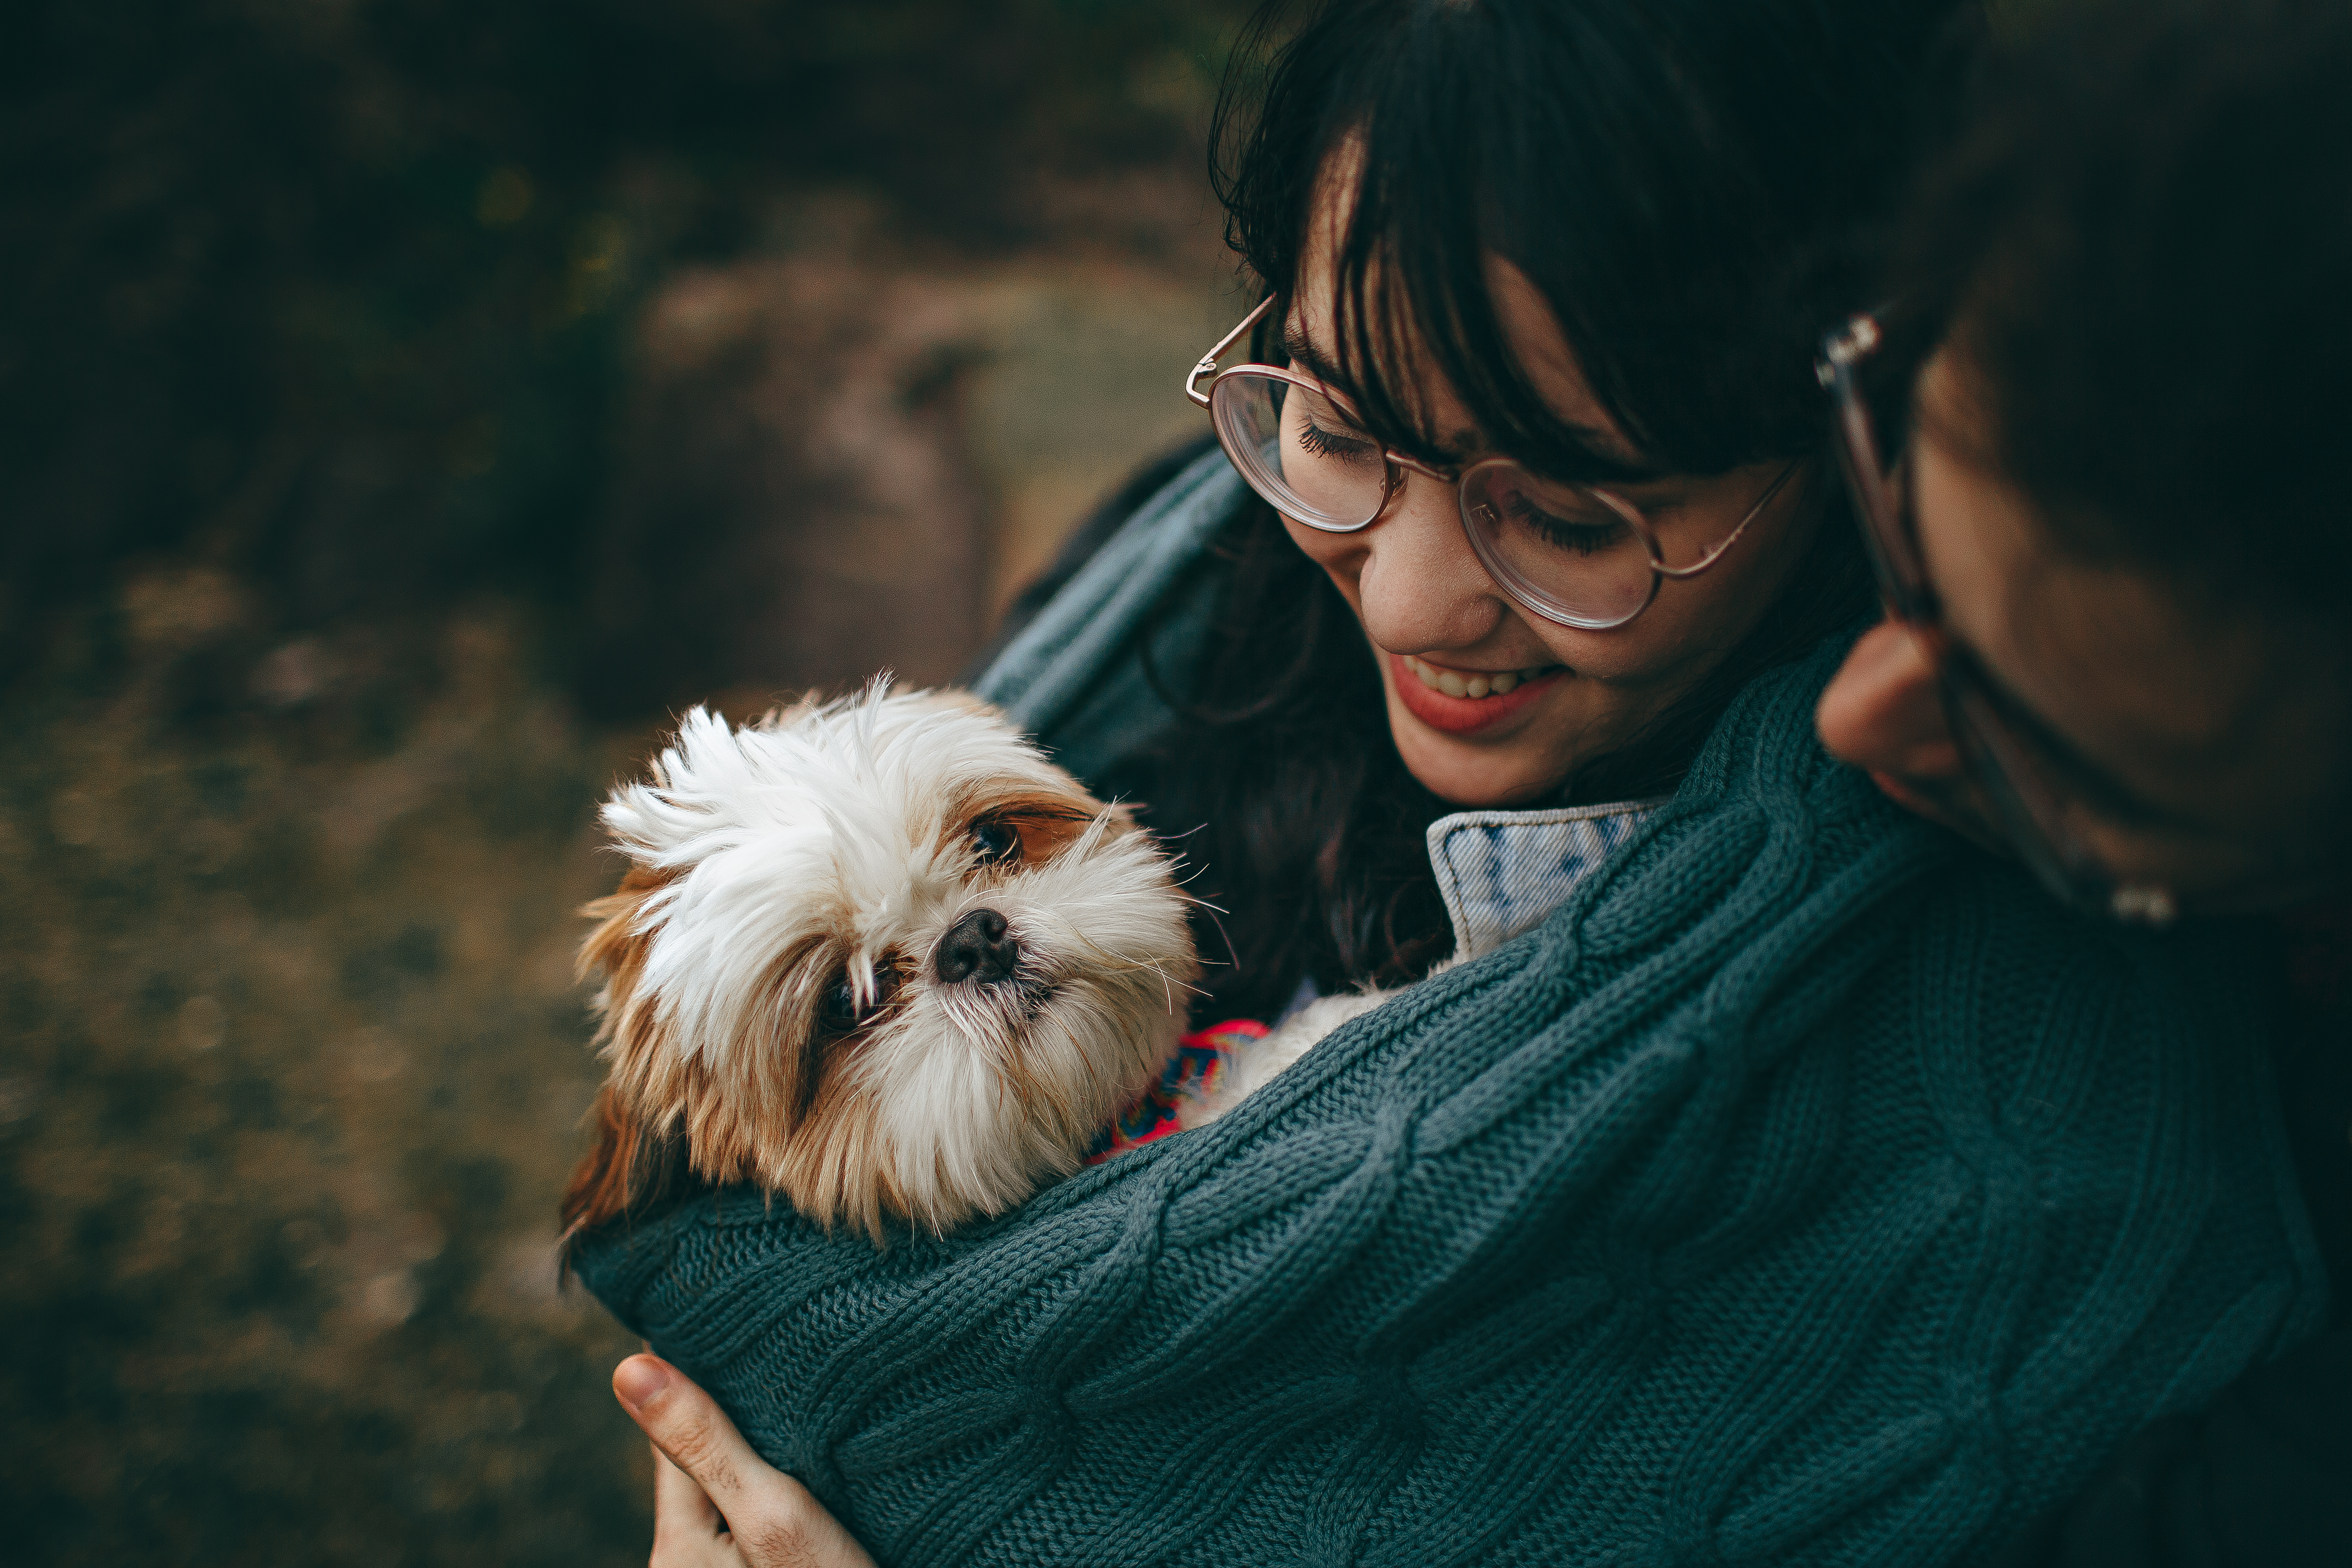 Selective Focus Photography of White and Tan Shih Tzu Puppy Carrying by Smiling Woman